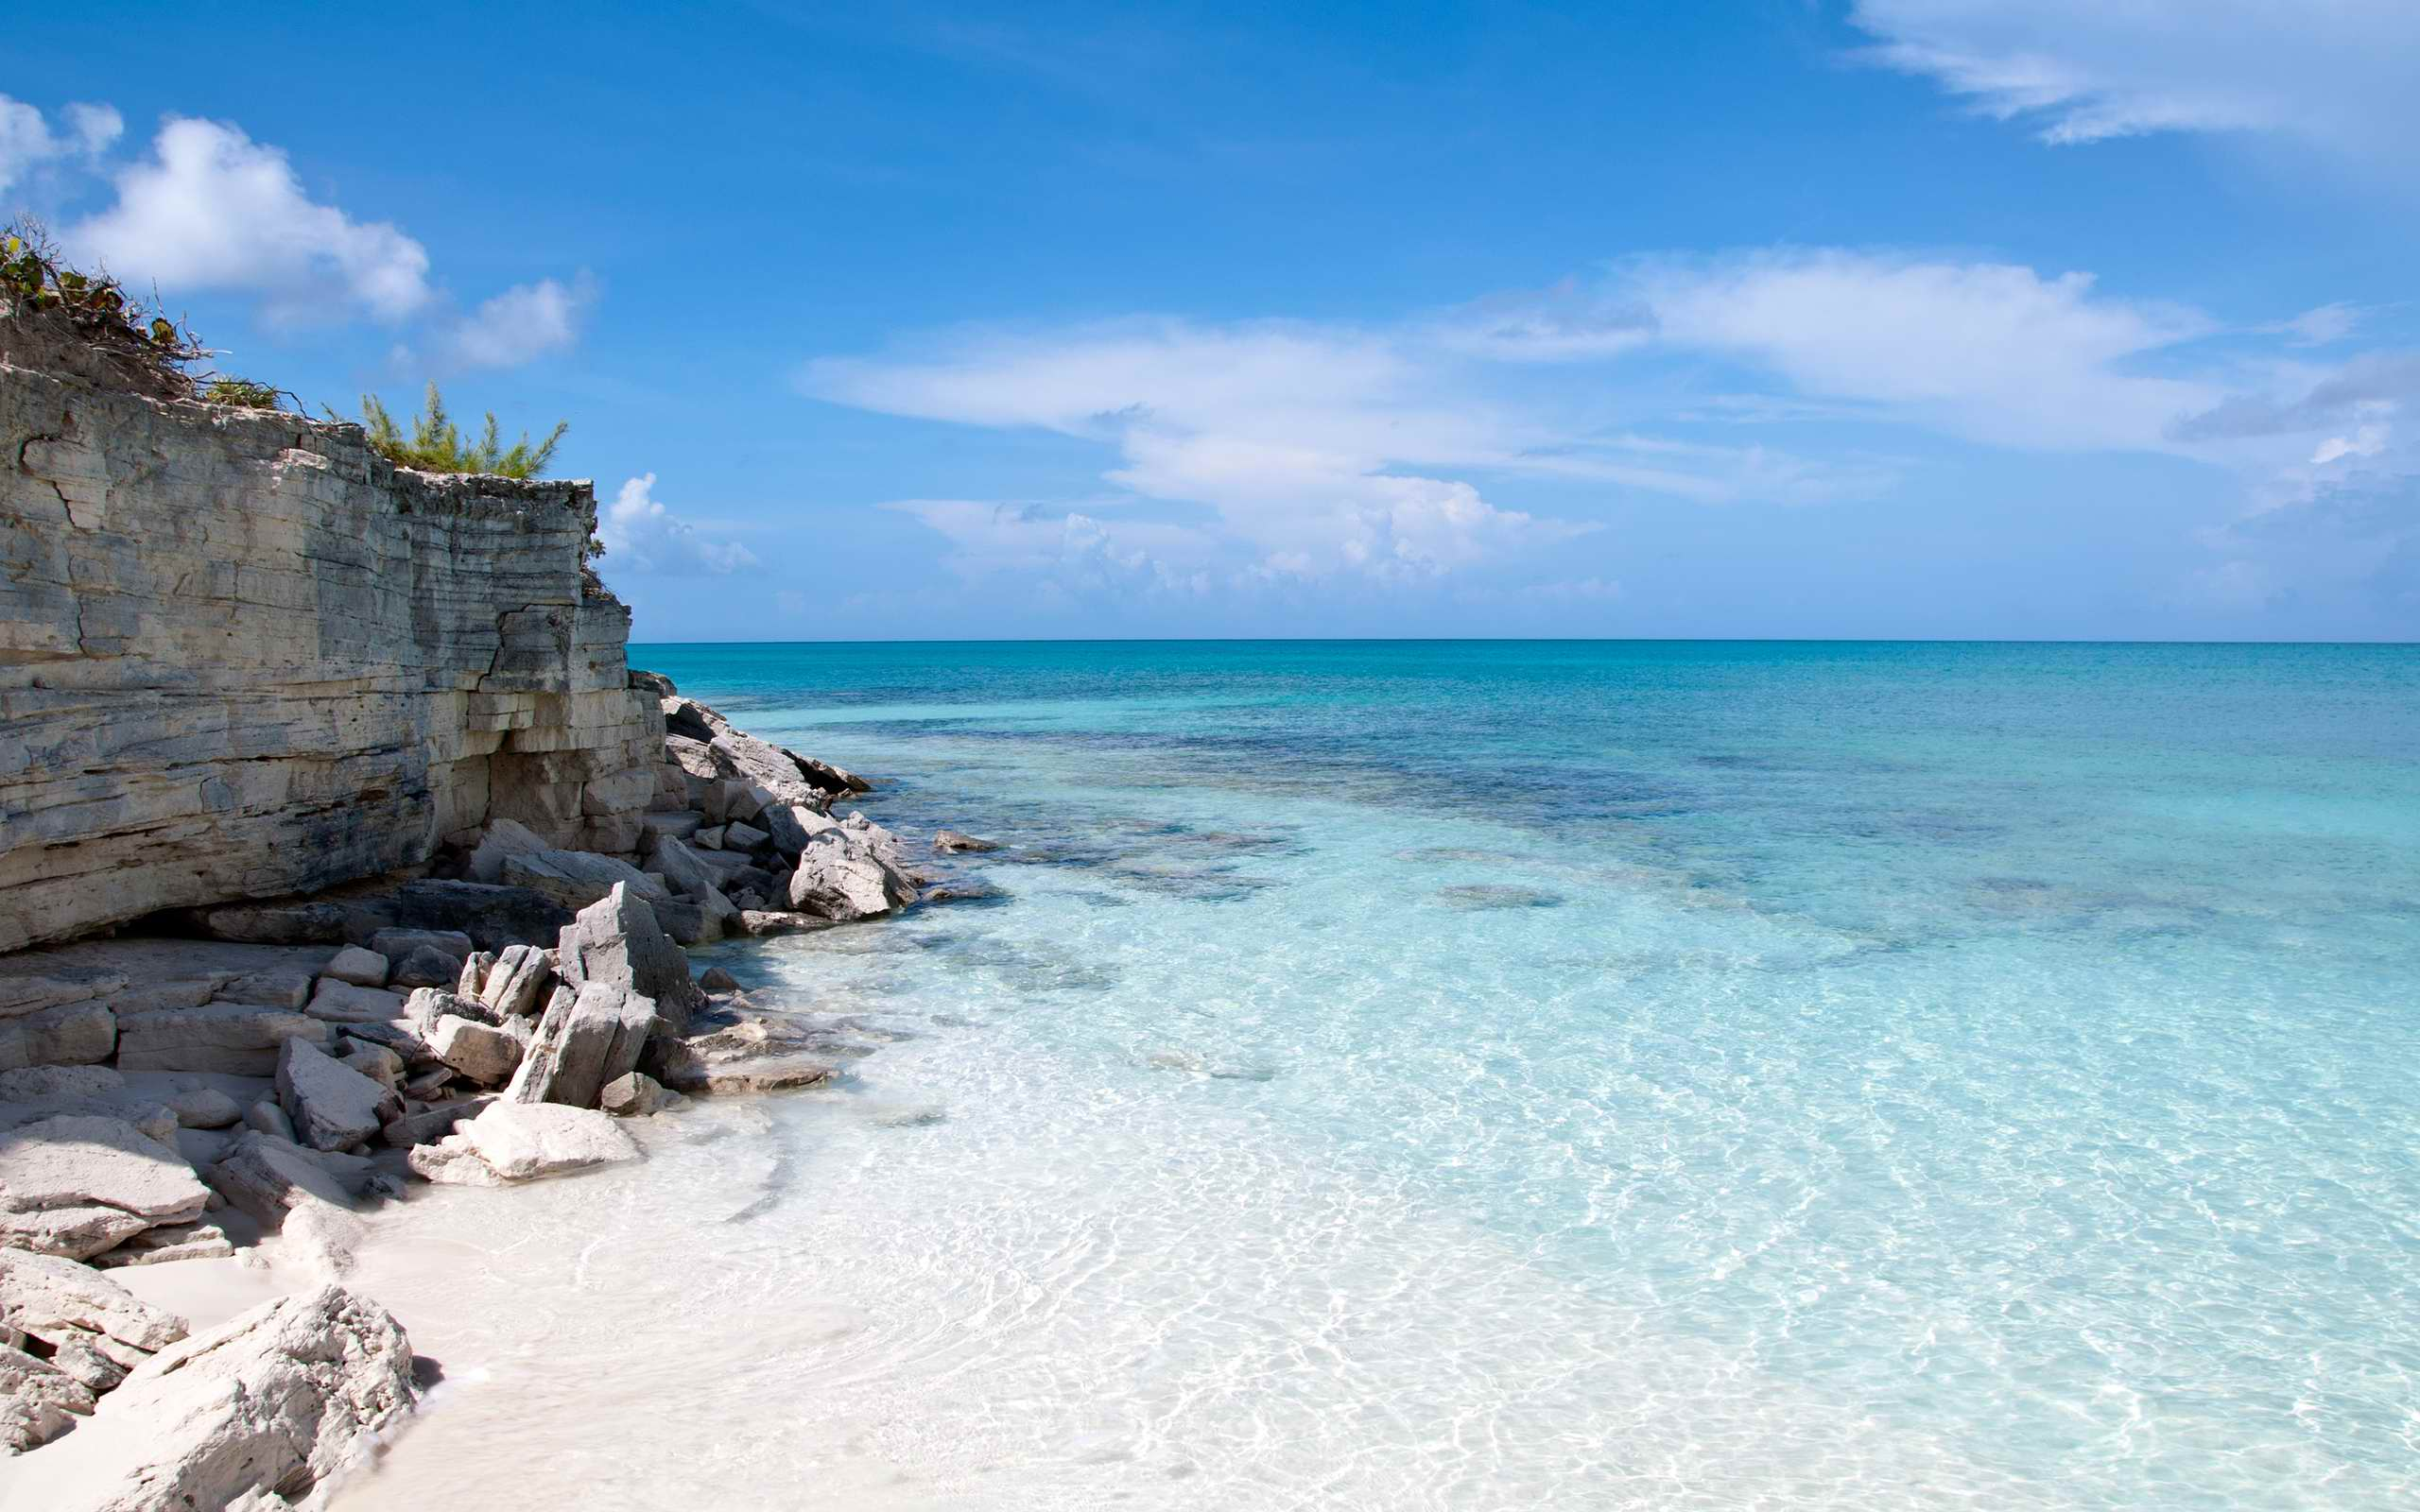 Photo Credit http://www.hotelroomsearch.net/top-destinations/turks-and-caicos